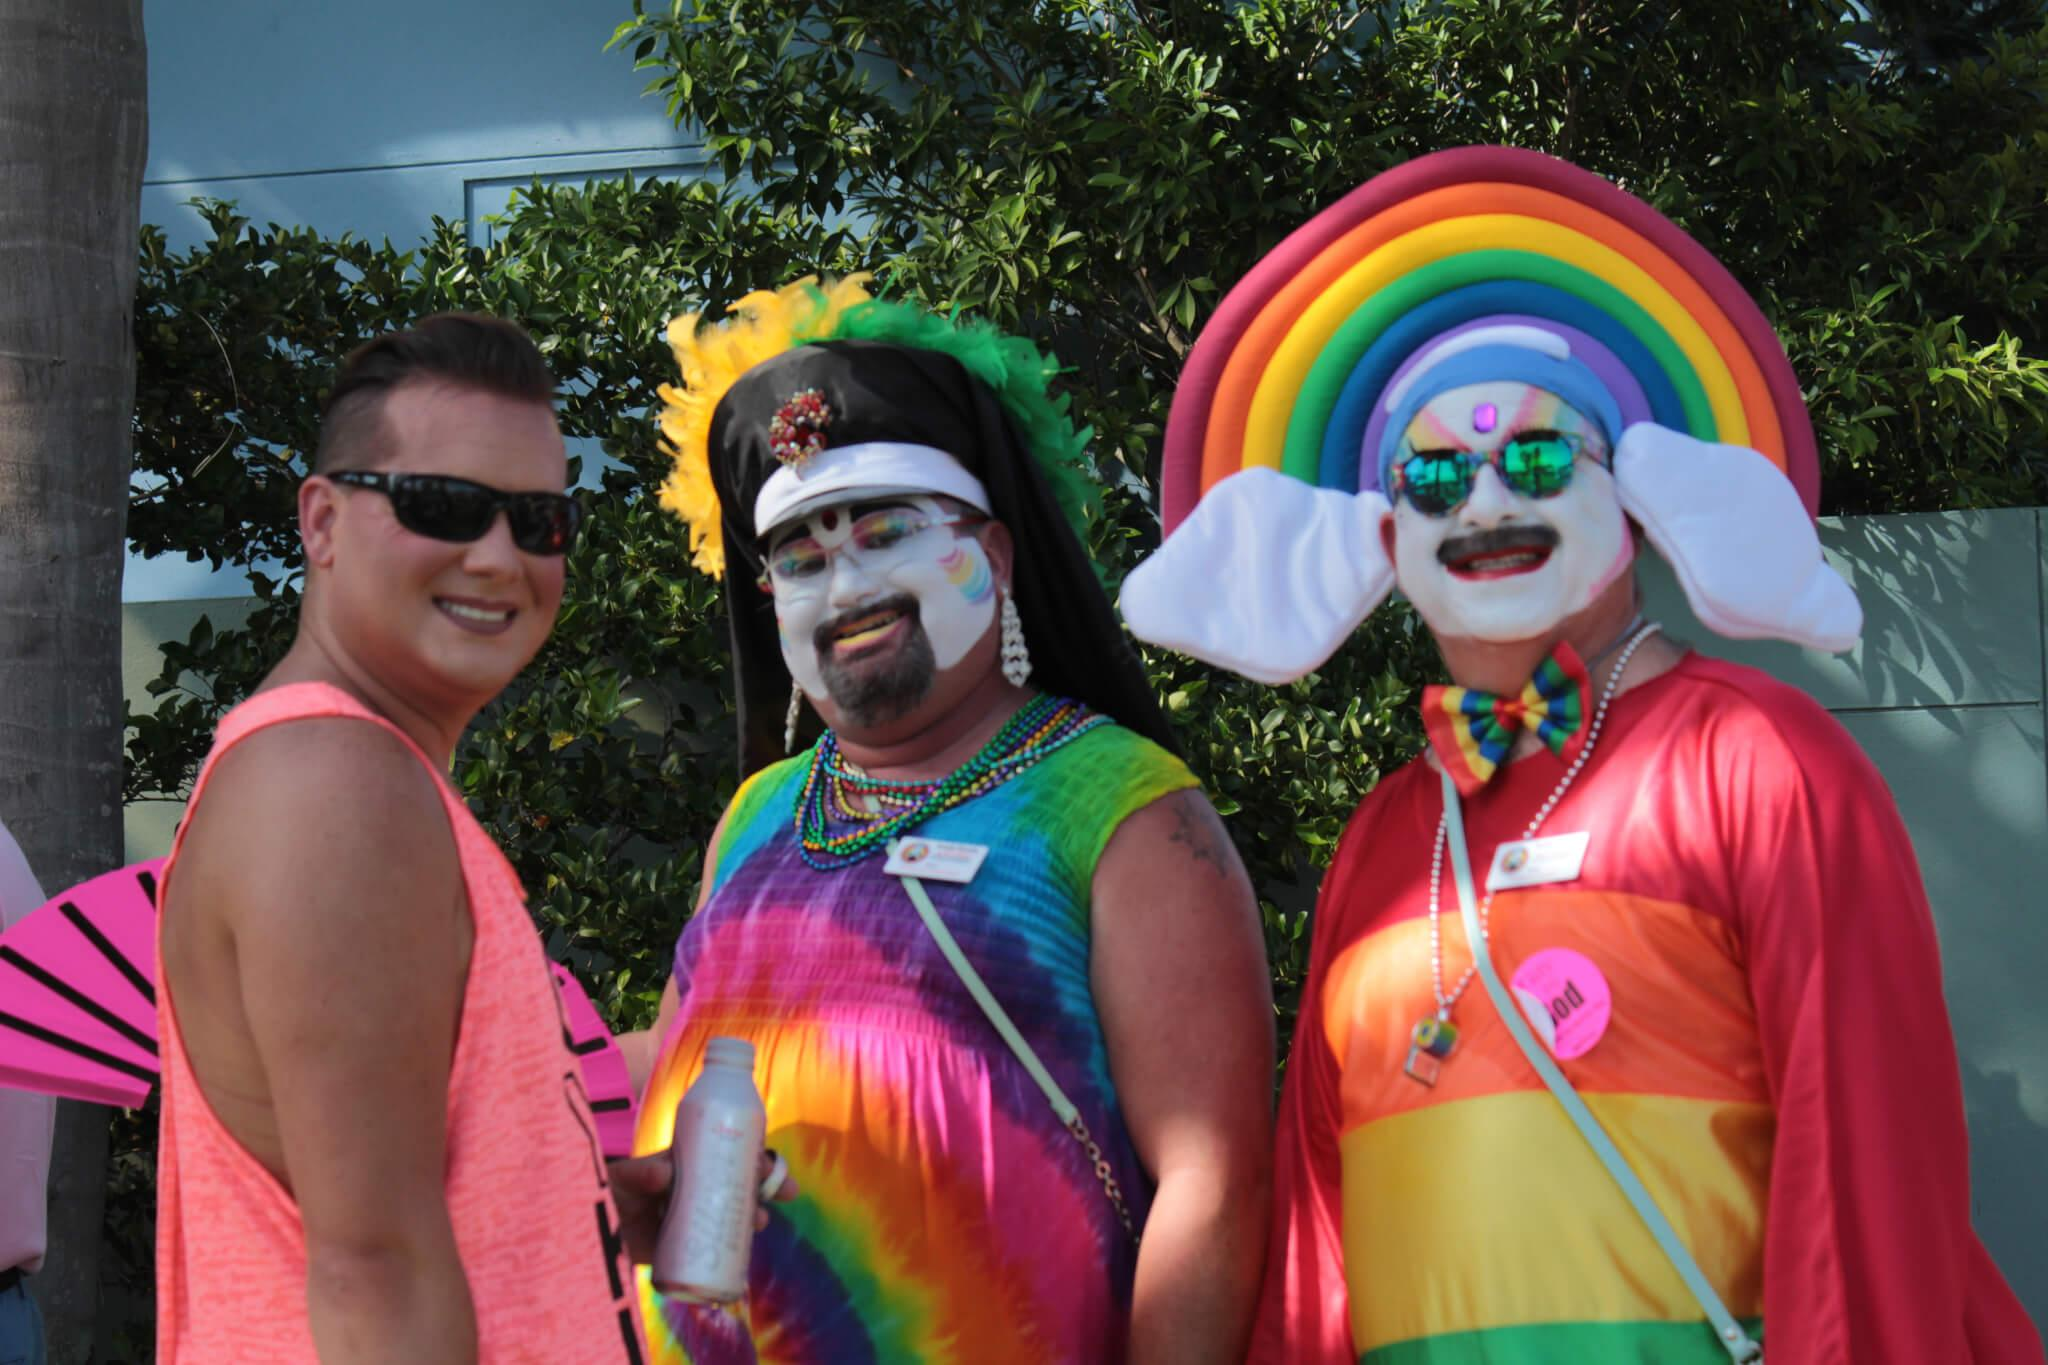 Alliance for the Arts hosts the SWFL Pride Festival in Fort Myers